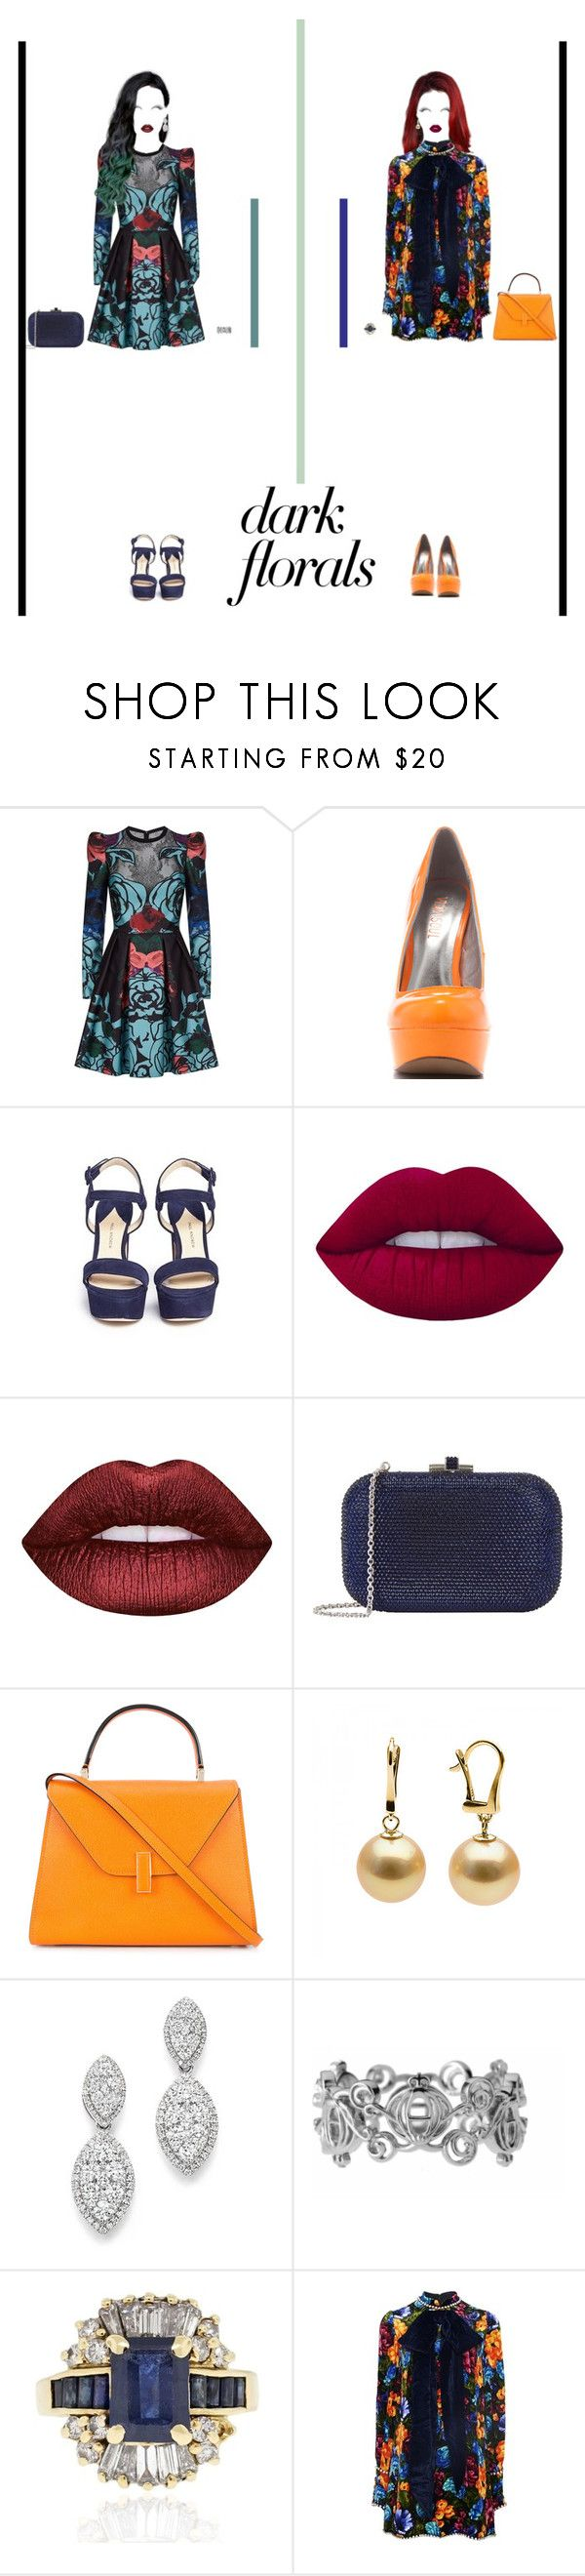 """""""Friends in Deep Florals"""" by nello-hope on Polyvore featuring Elie Saab, Veda Soul, Paul Andrew, Lime Crime, Judith Leiber, Valextra, Bloomingdale's, Gucci and darkflorals"""